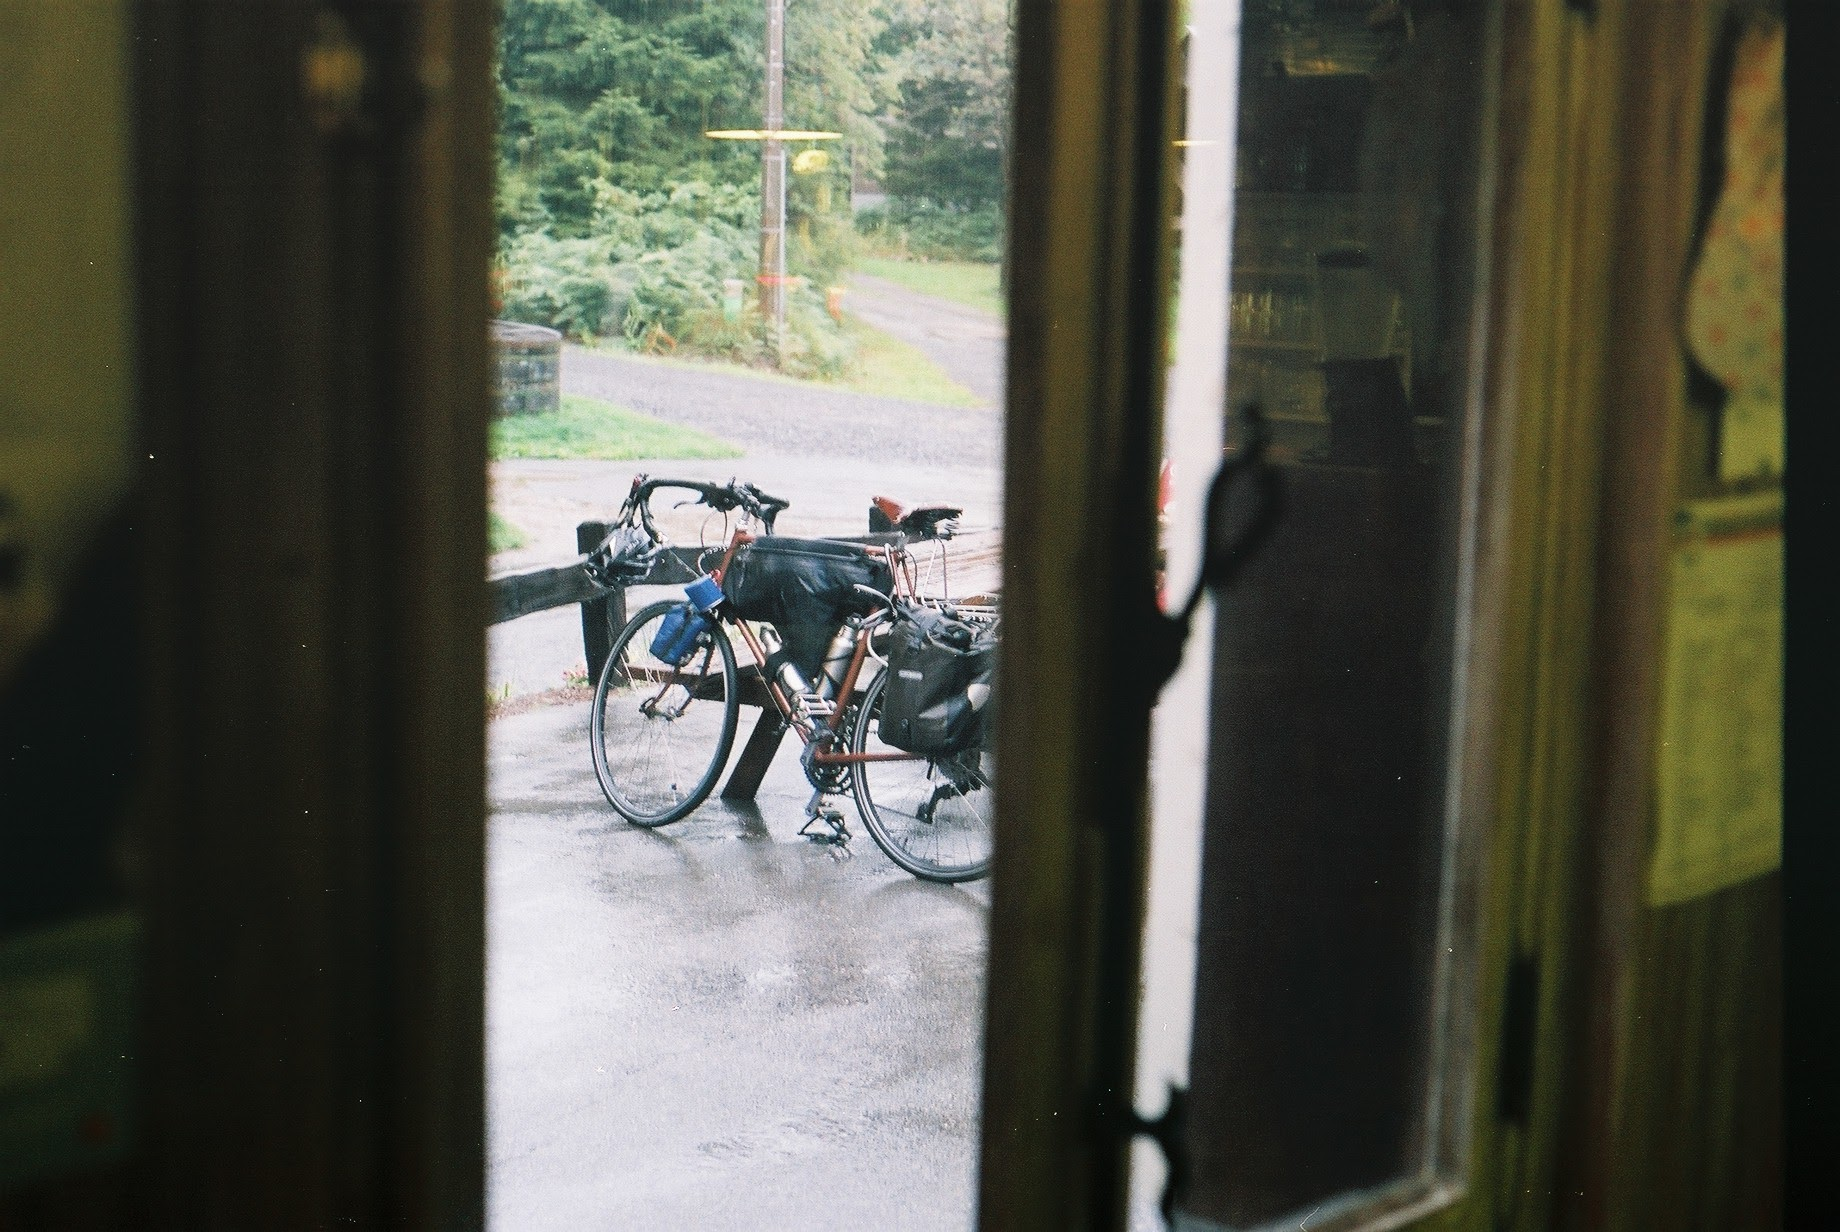 raleigh, raleigh magnum, steel frame, custom tourer, canon, canon ae-1, film camera, 35mm, shoot film, film shooters, tips for shooting in film, no filter travel, travel blog, cycling, cycling blog, bikepacking, bicycle touring apocalypse